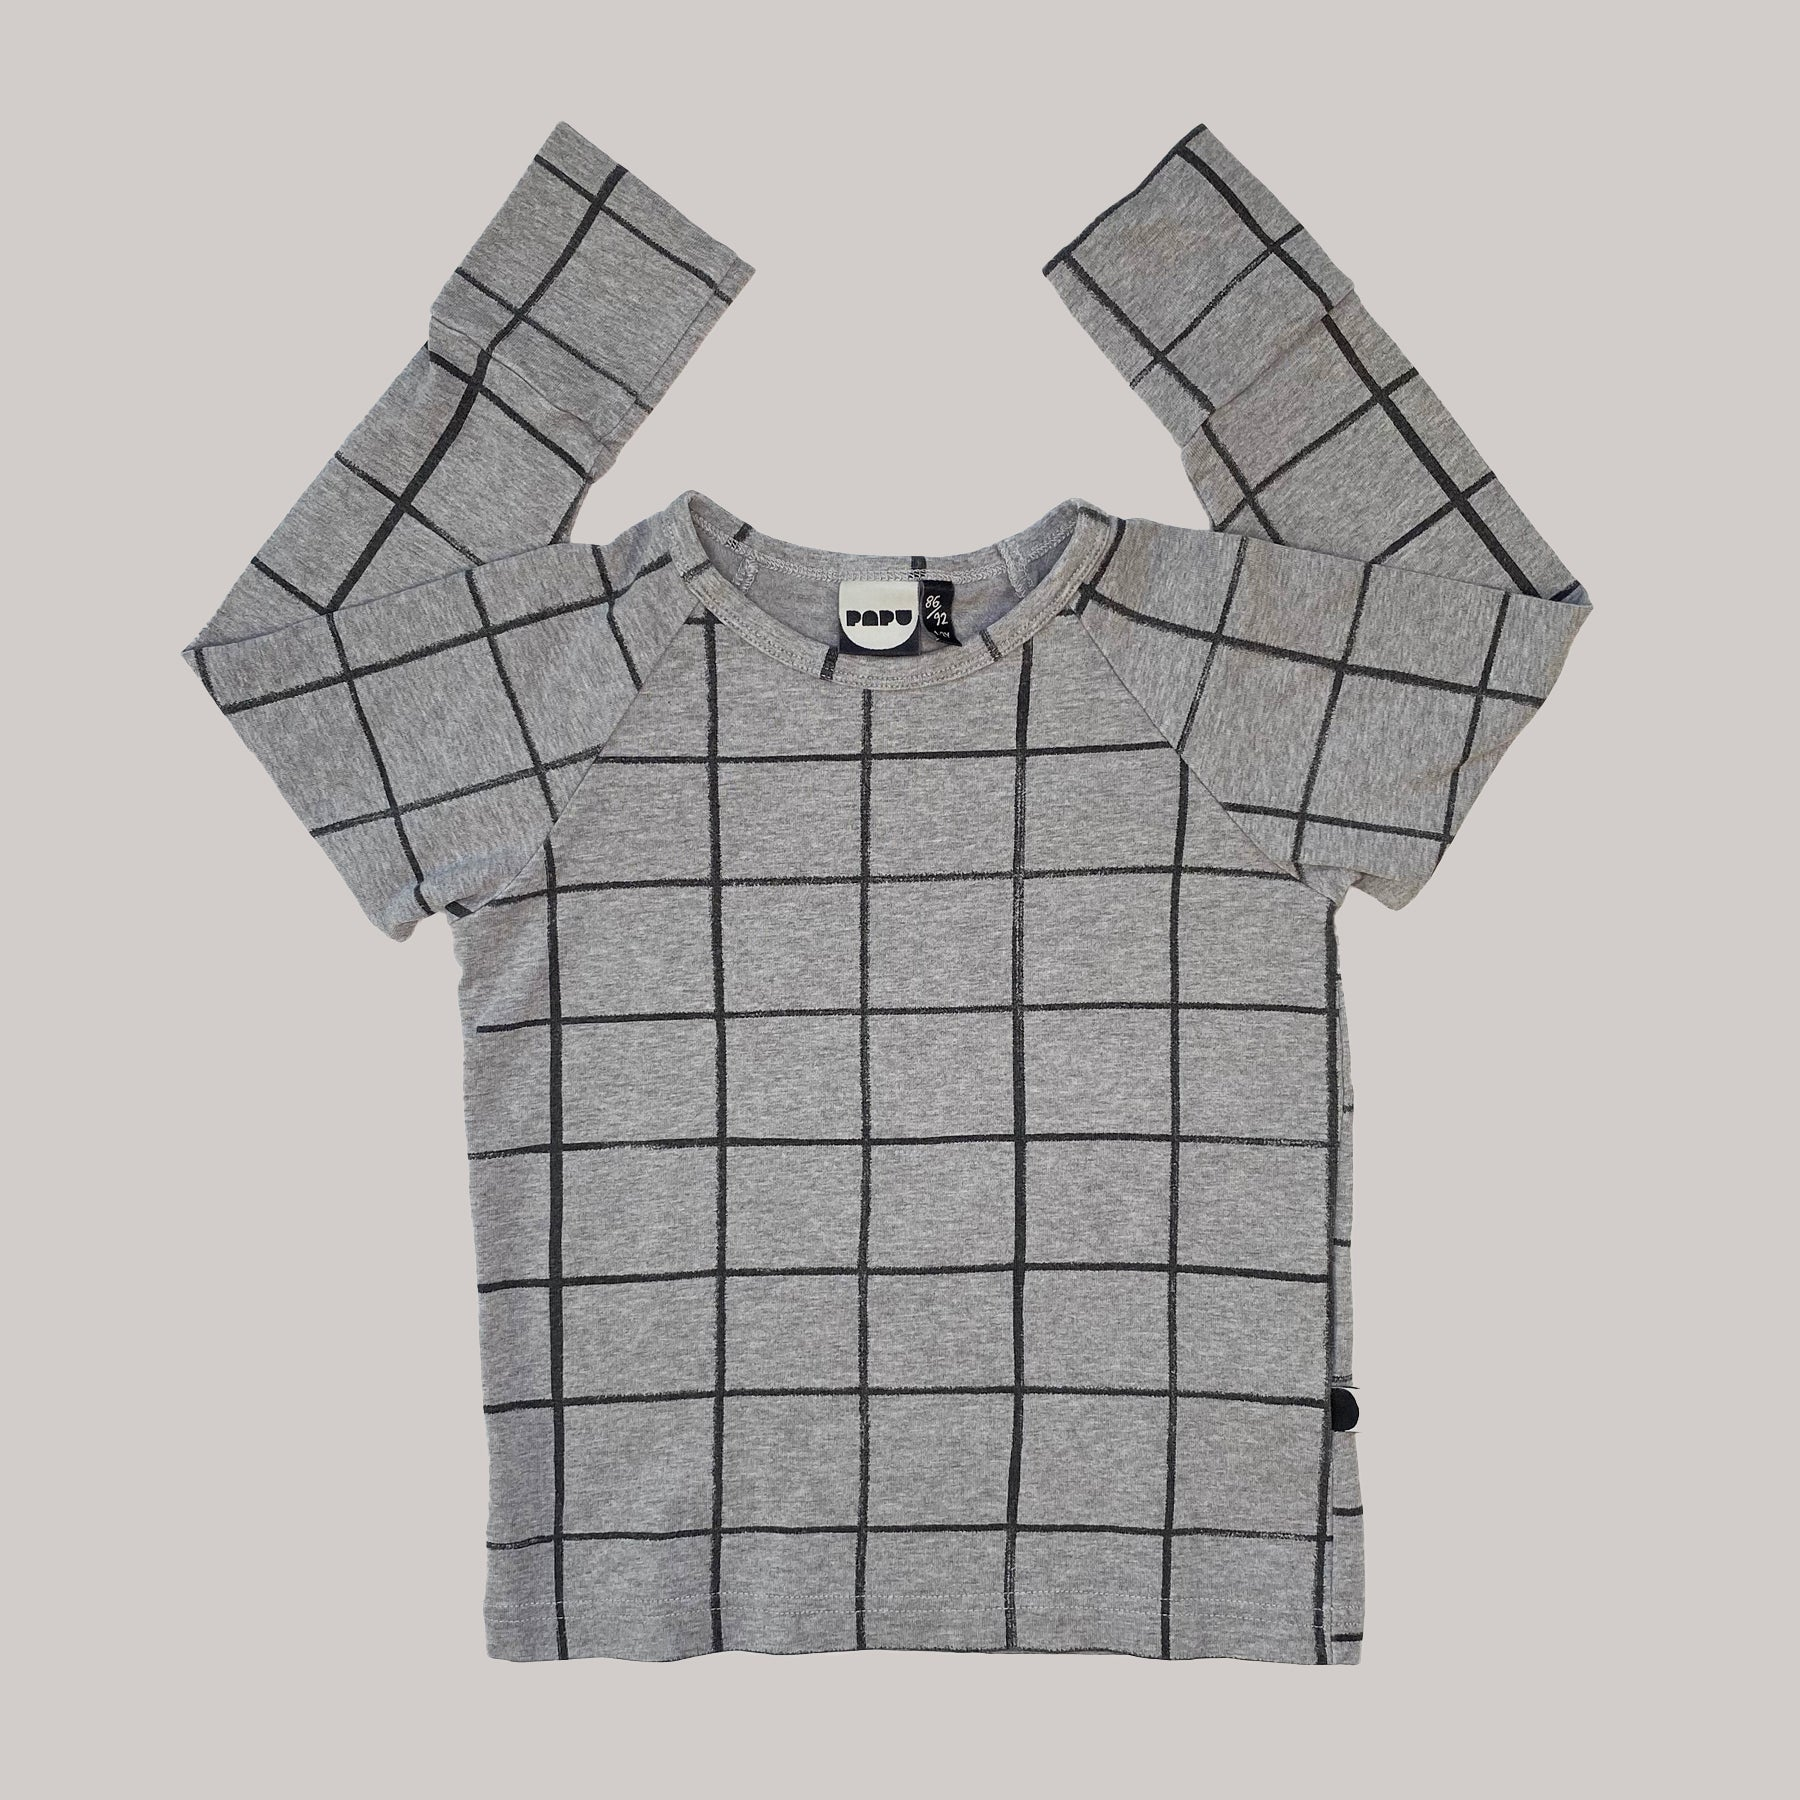 Re-wear : Papu ruutu paita, grey | 86/92cm